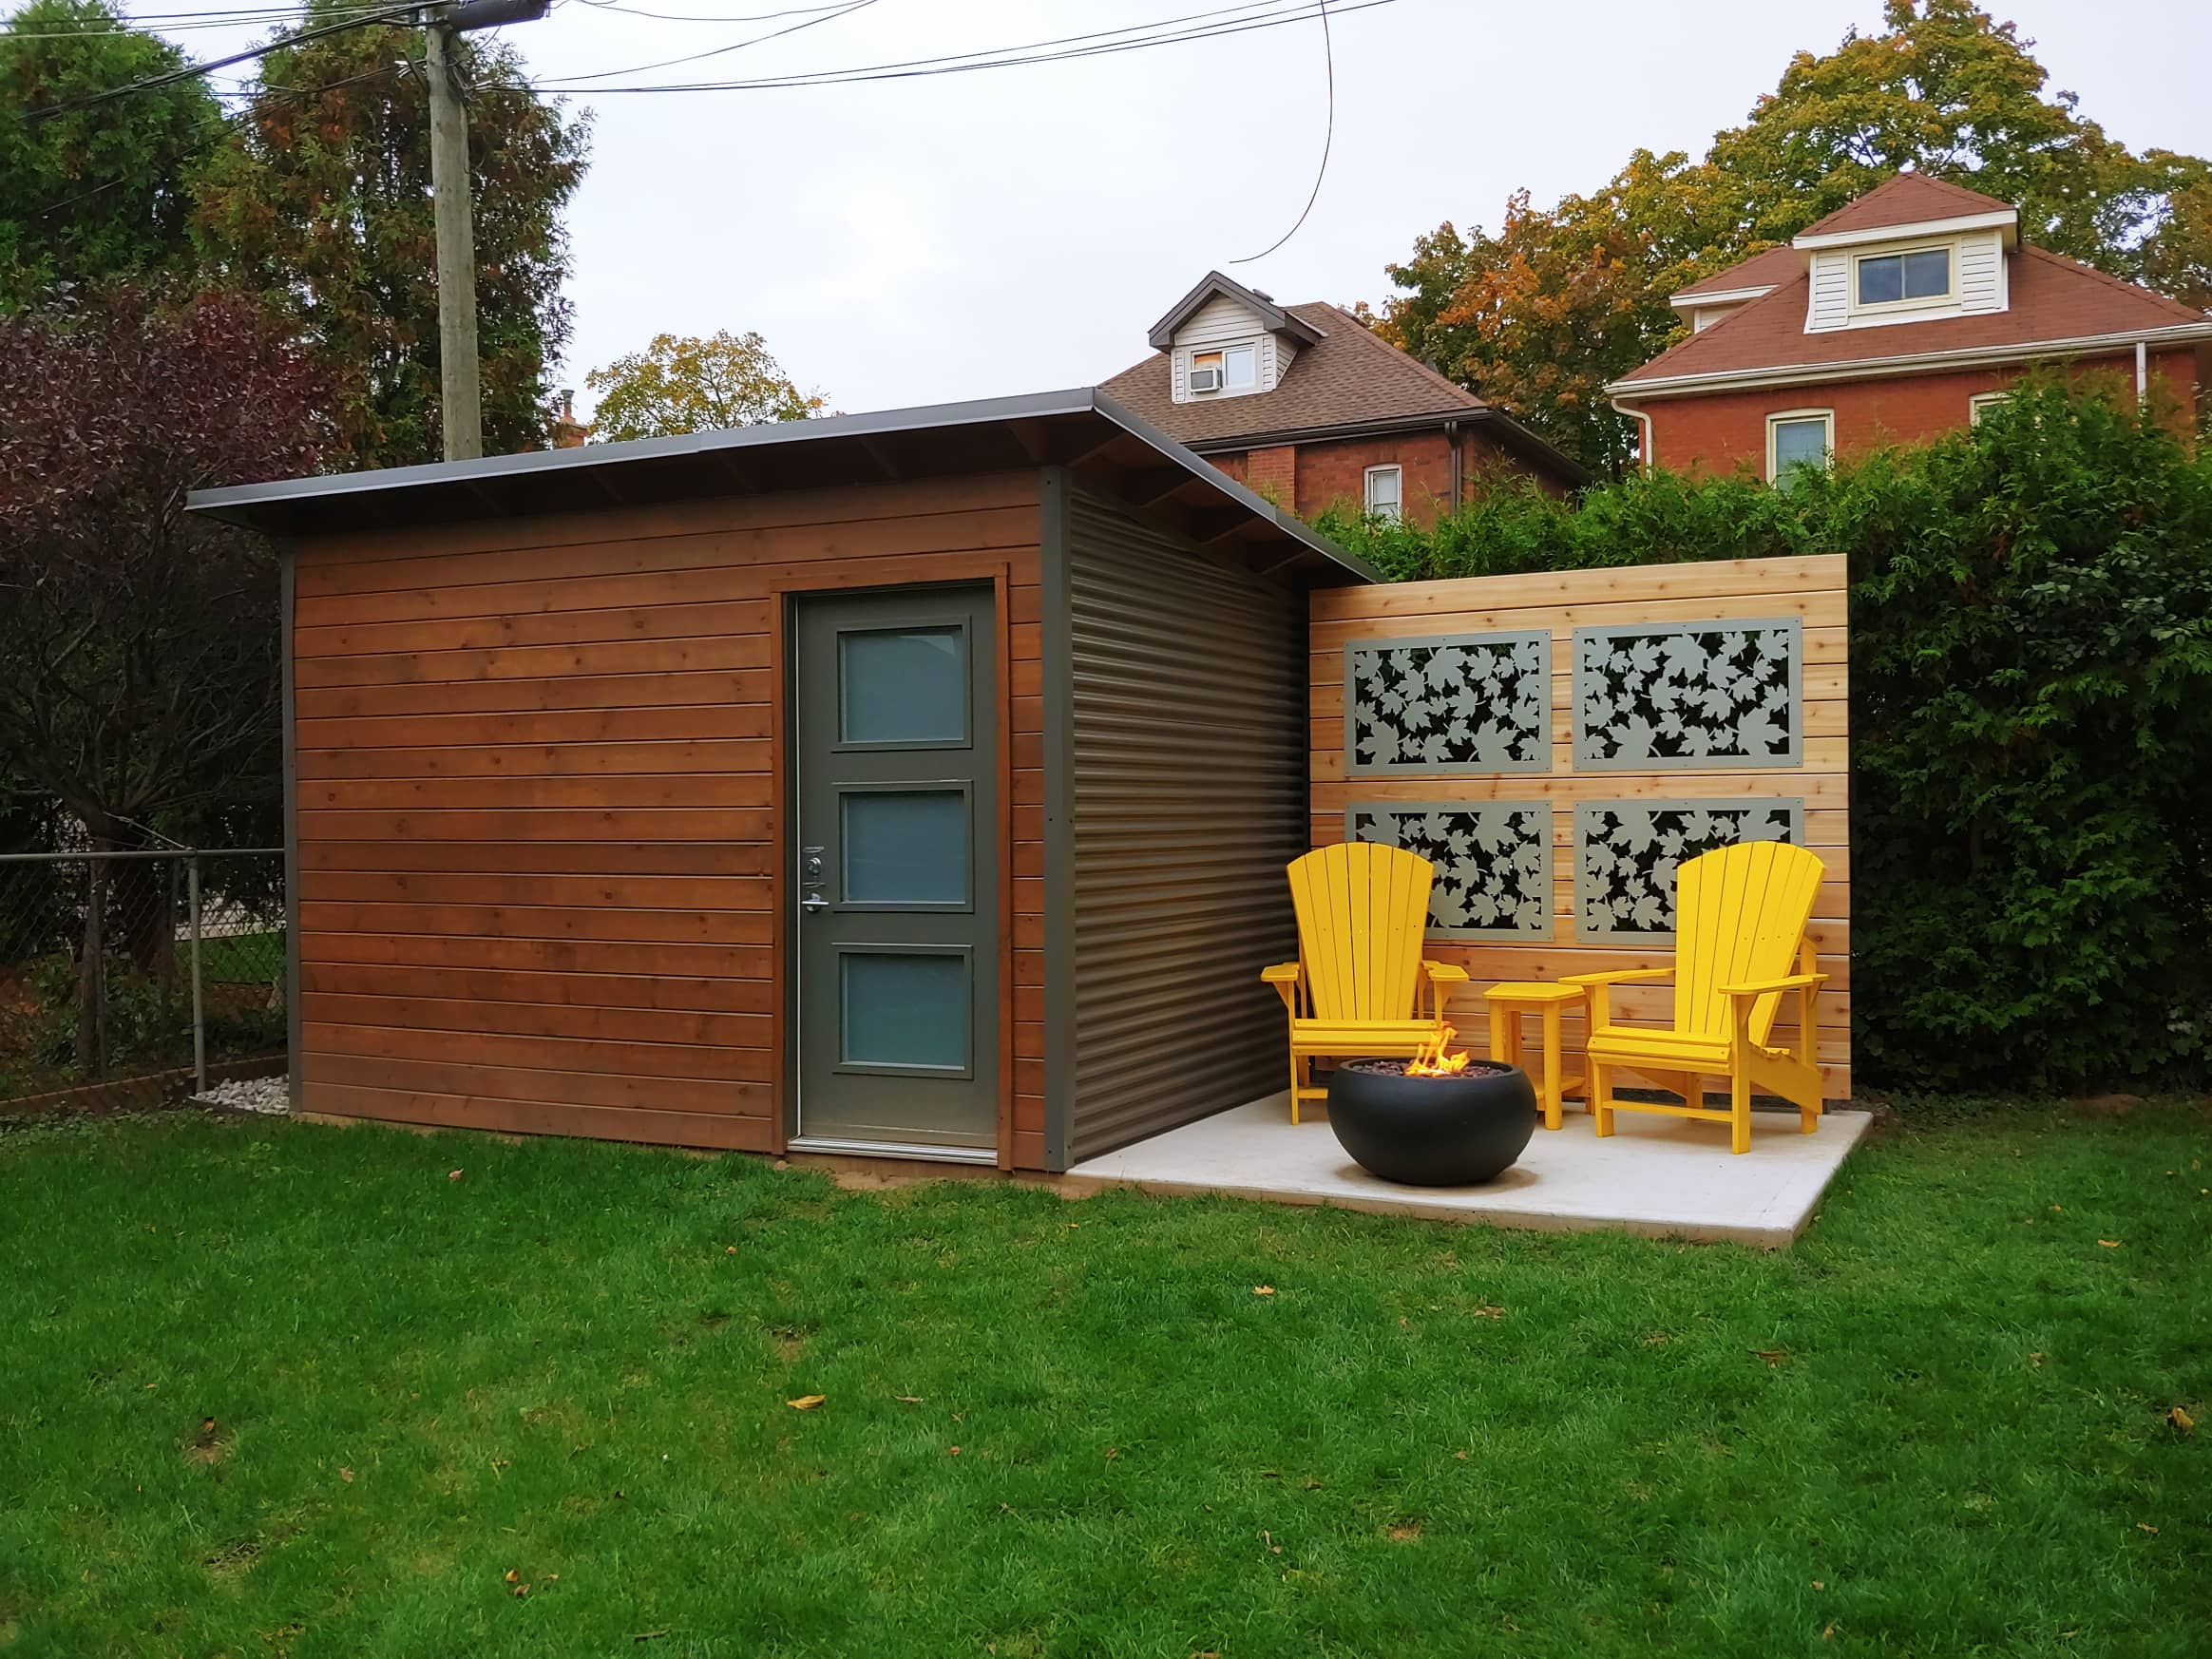 12' x 8' Custom Garden Shed with Muskoka Brown Stain and Charcoal Steel